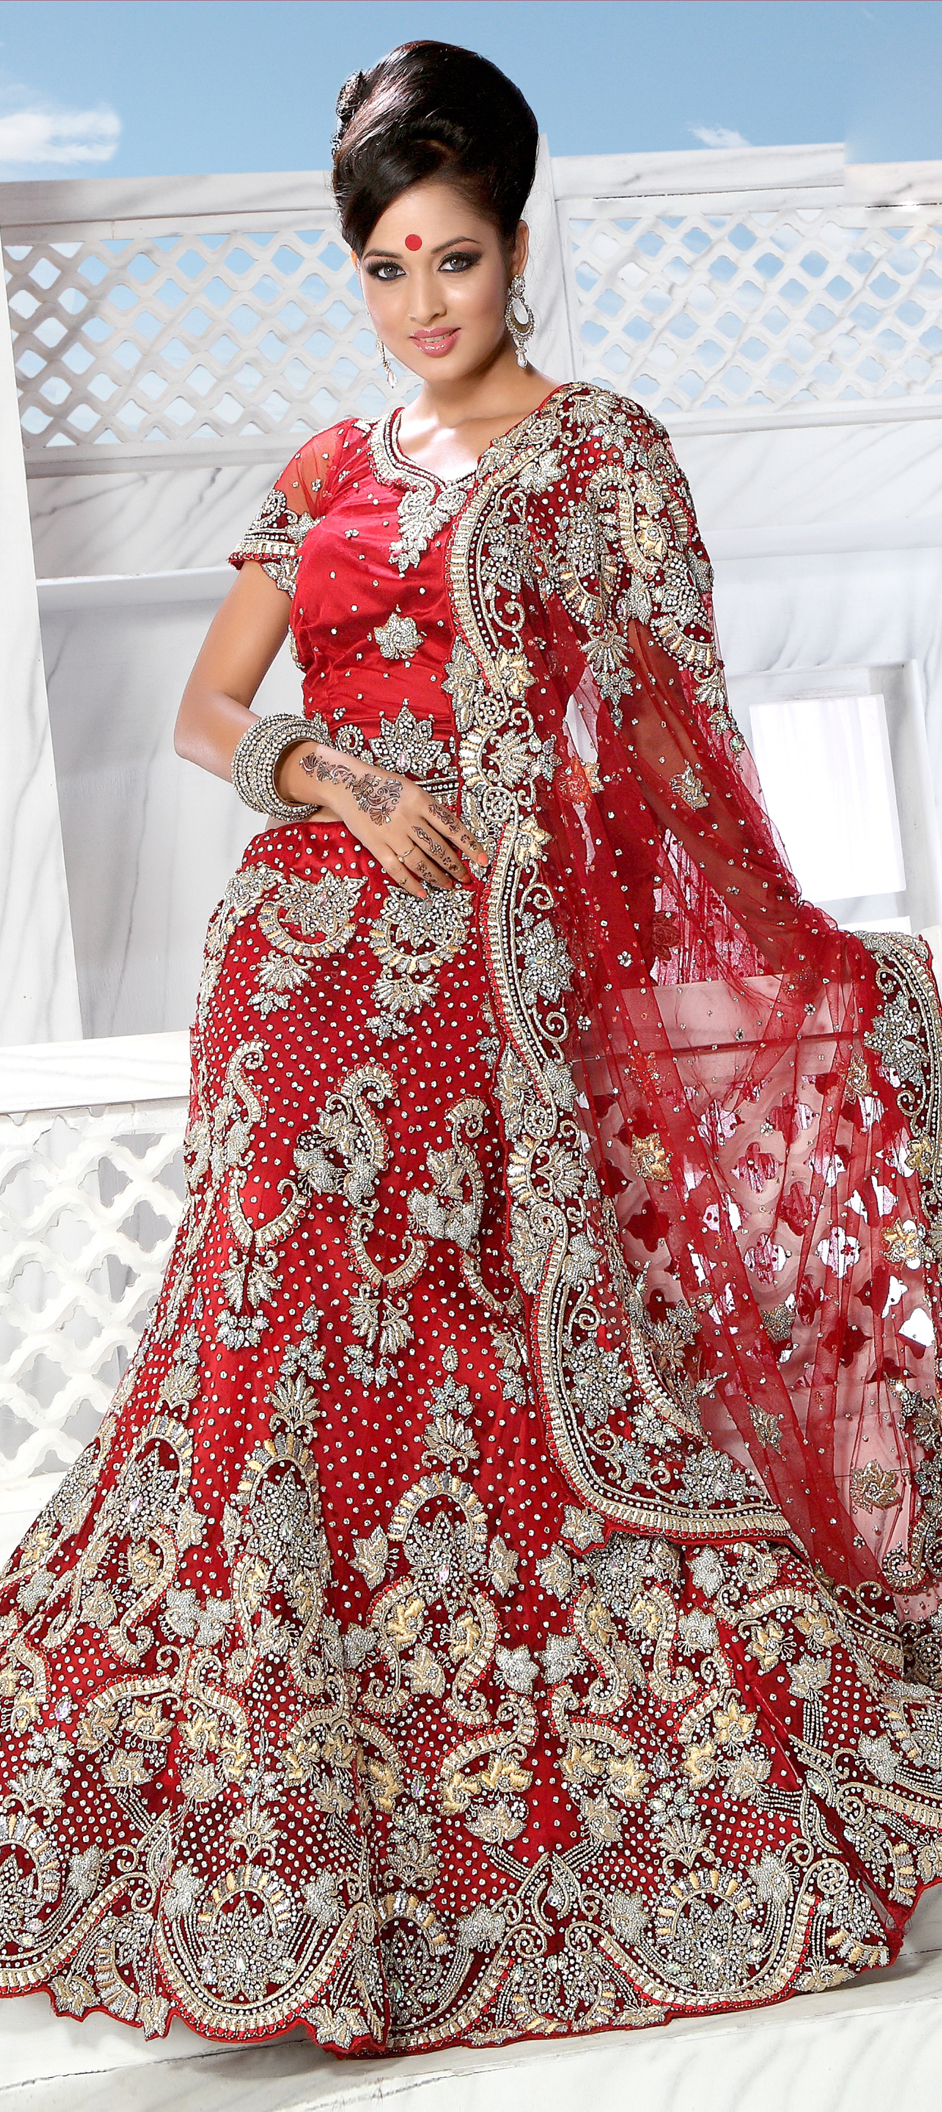 83349: Red and Maroon color family Bridal Lehenga,Wedding Lehnga .